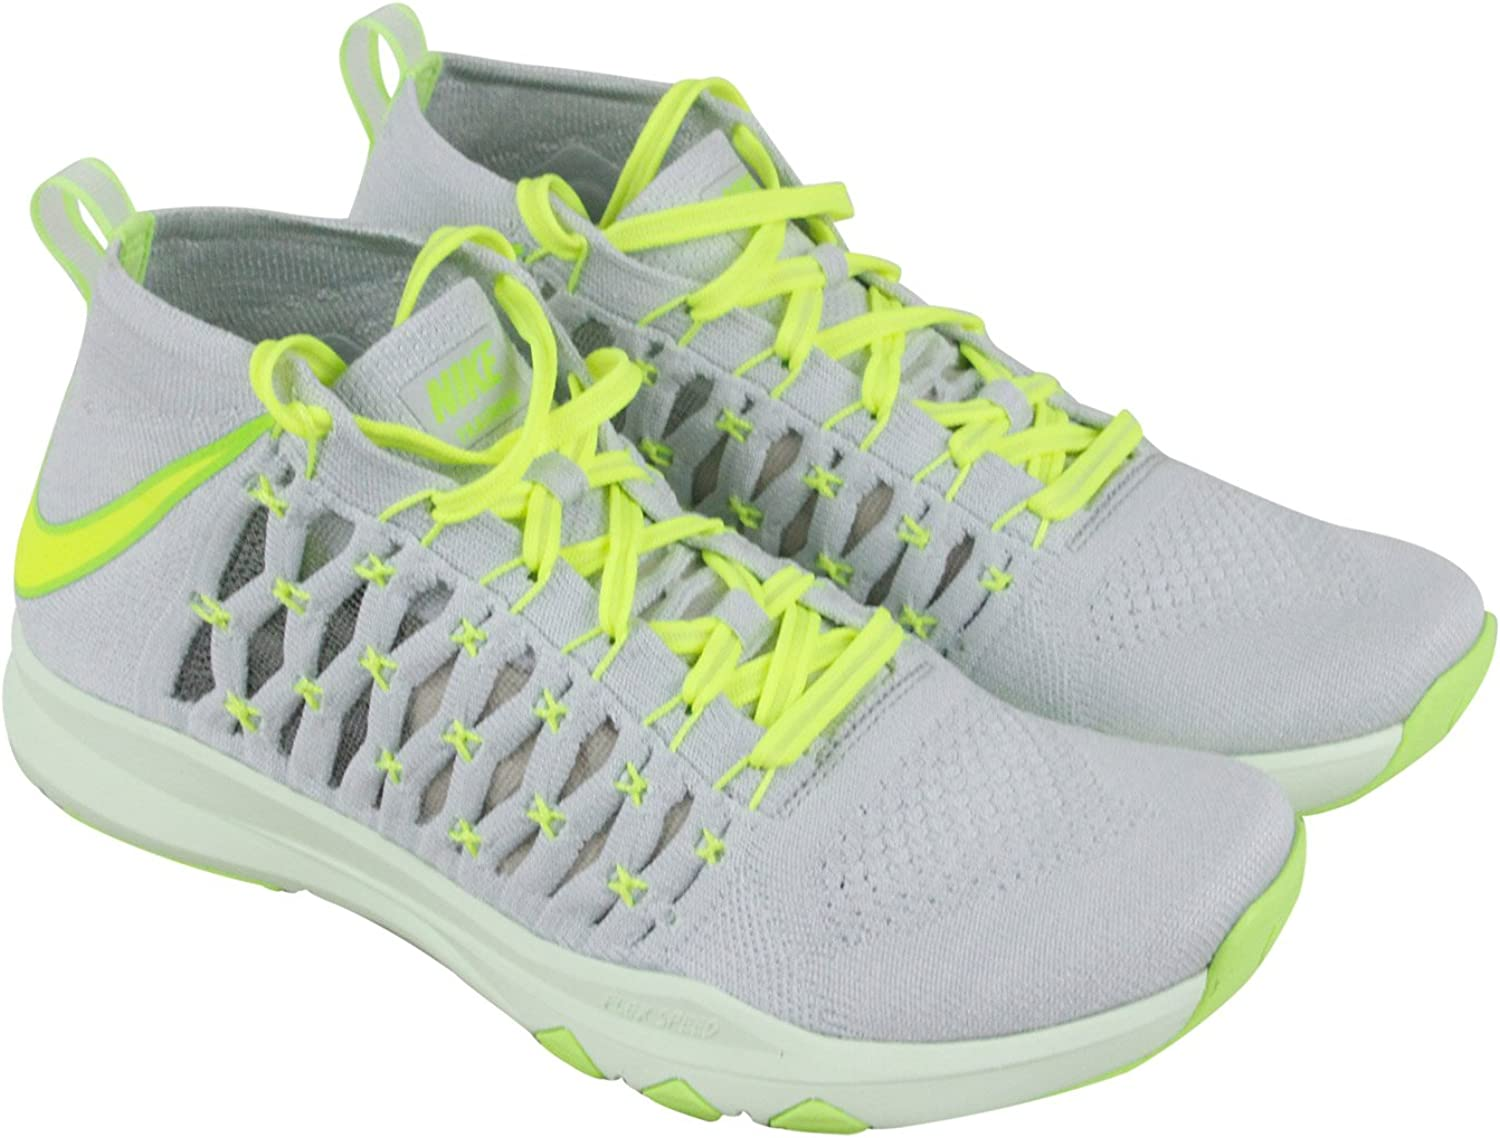 Nike Men's Train Ultrafast Flyknit Ankle-High Fabric Running shoes